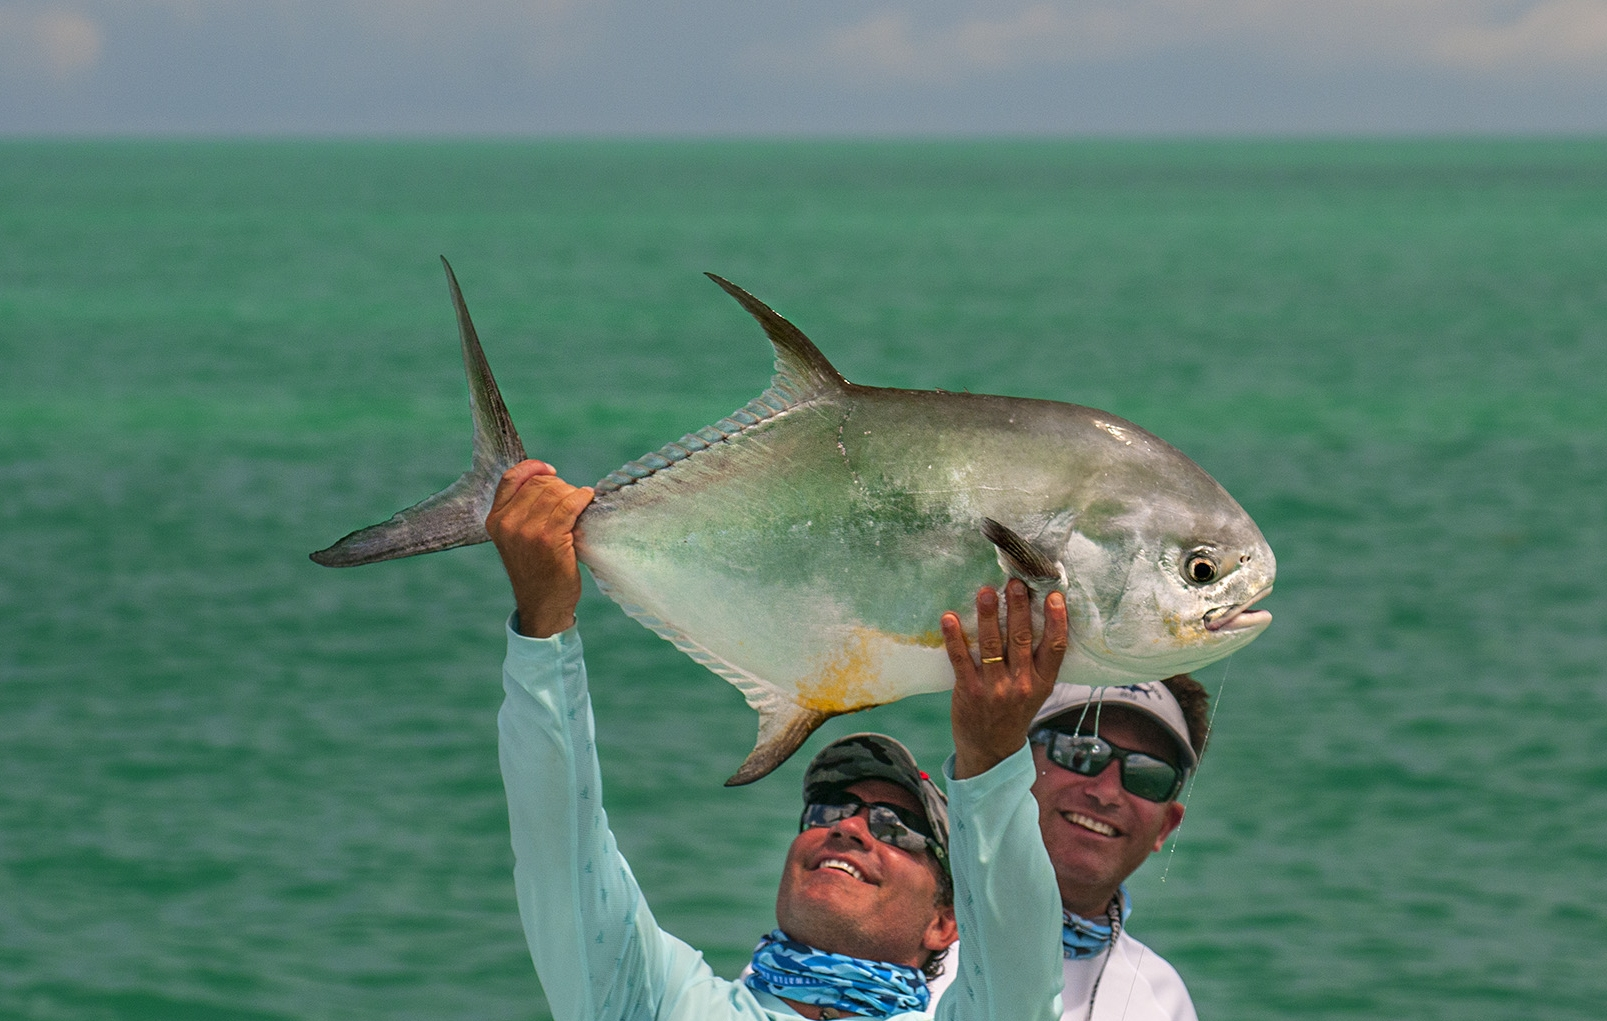 The Permit is my favorite fish. Read on to find out the very best seasons, locations and guides to help you catch a Permit